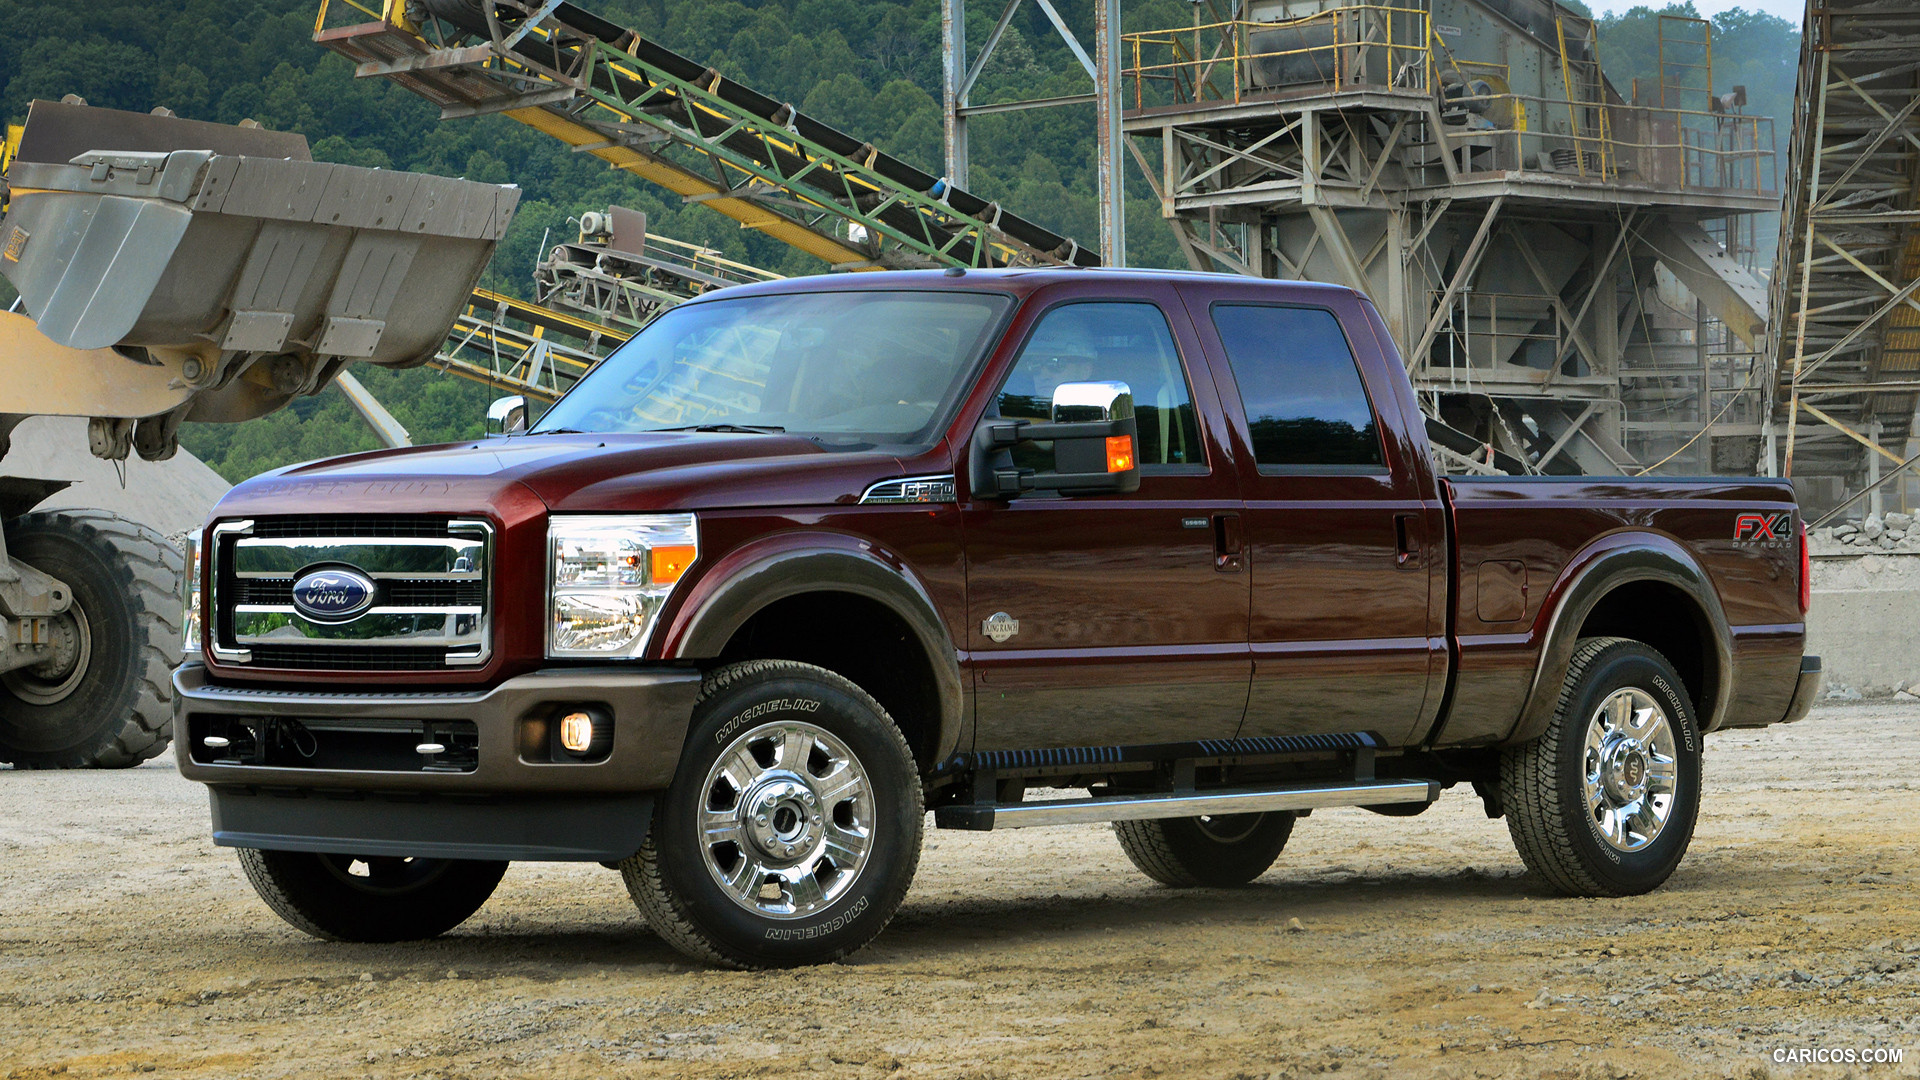 Download Latest Hd Wallpapers Of Vehicles Ford F 250 Super Duty King Ranch